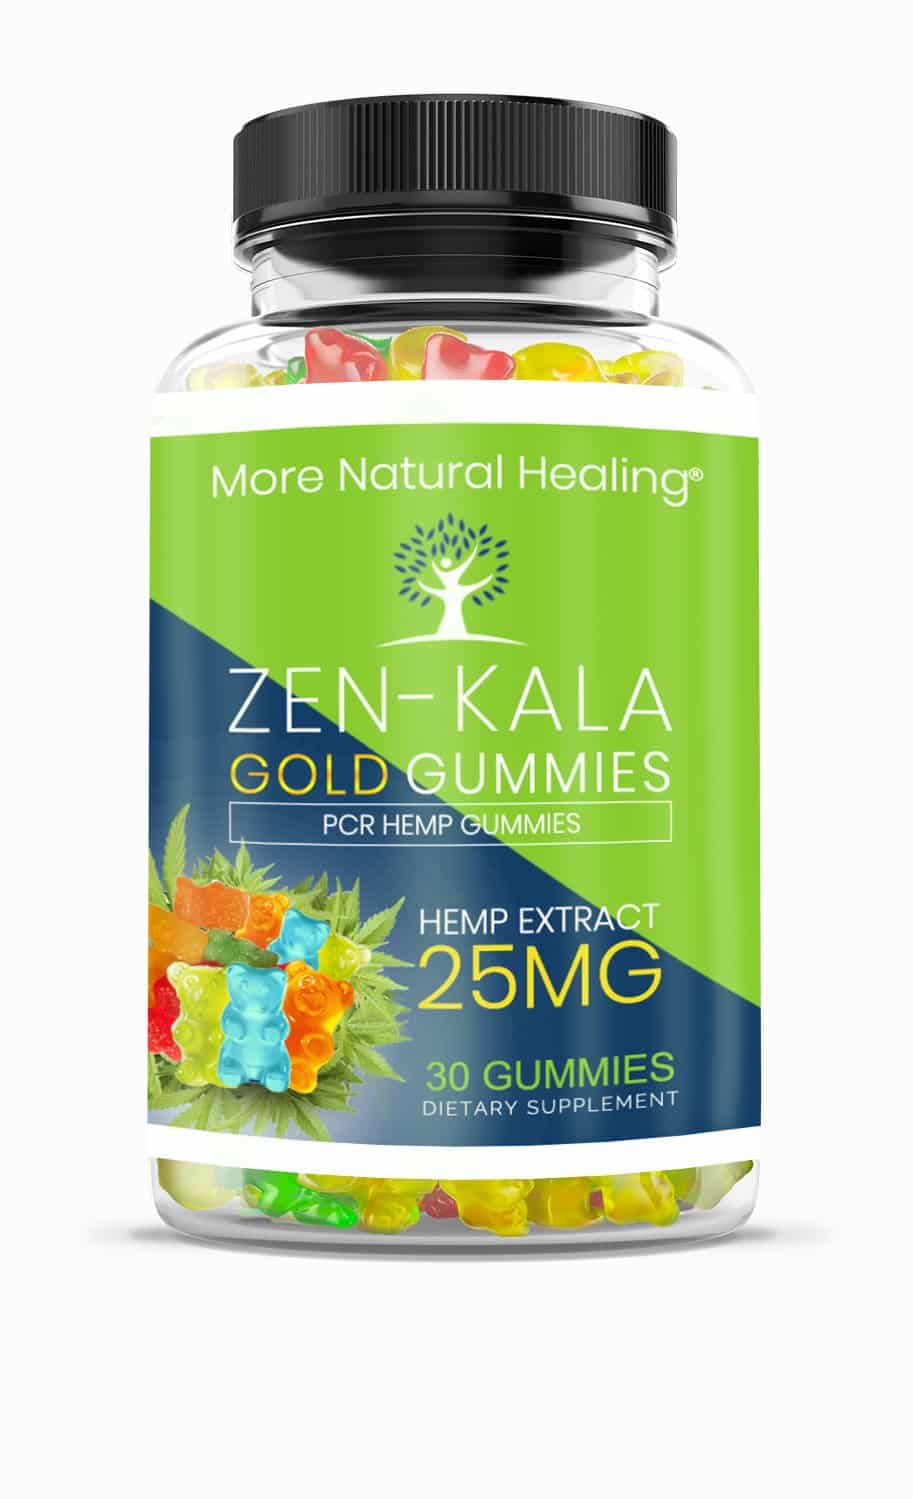 ZEN-KALA GOLD GUMMIES 25 MG - More Natural Healing